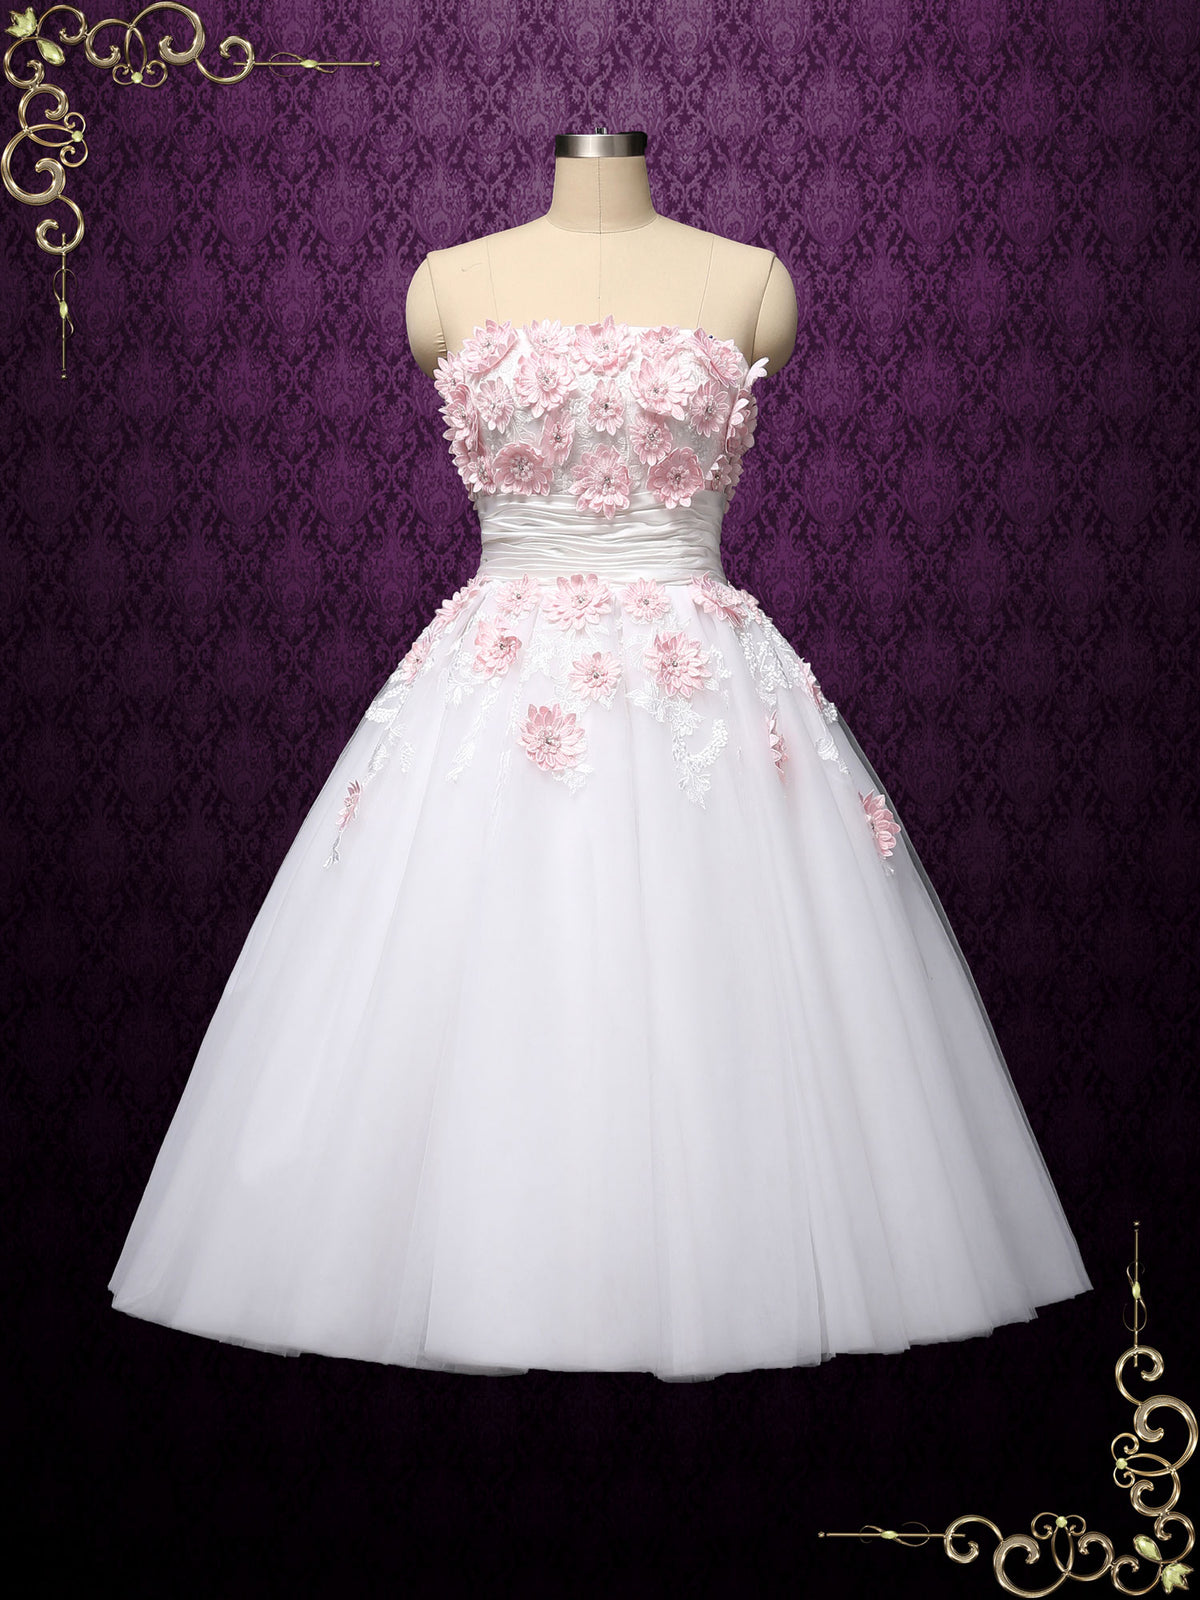 579b6e5826693 ... Tulle Wedding Dress with Daisy Floral Applique. short strapless tea  length wedding dress with pink flowers